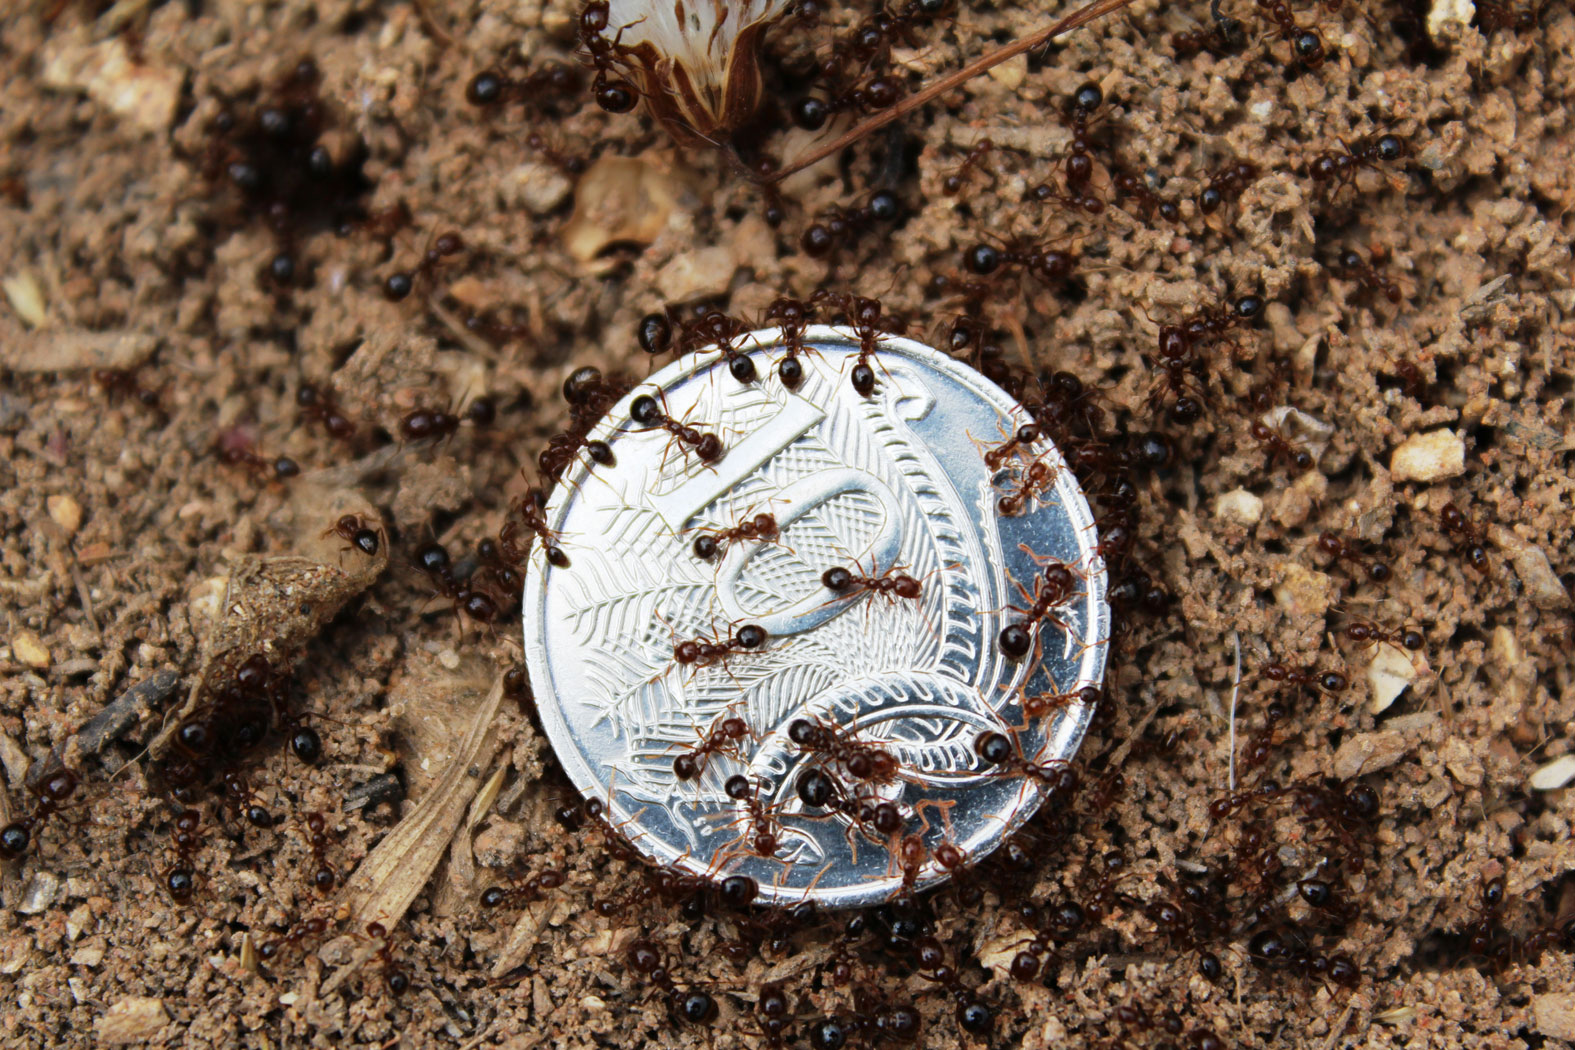 Fire ants on a coin showing variety in size